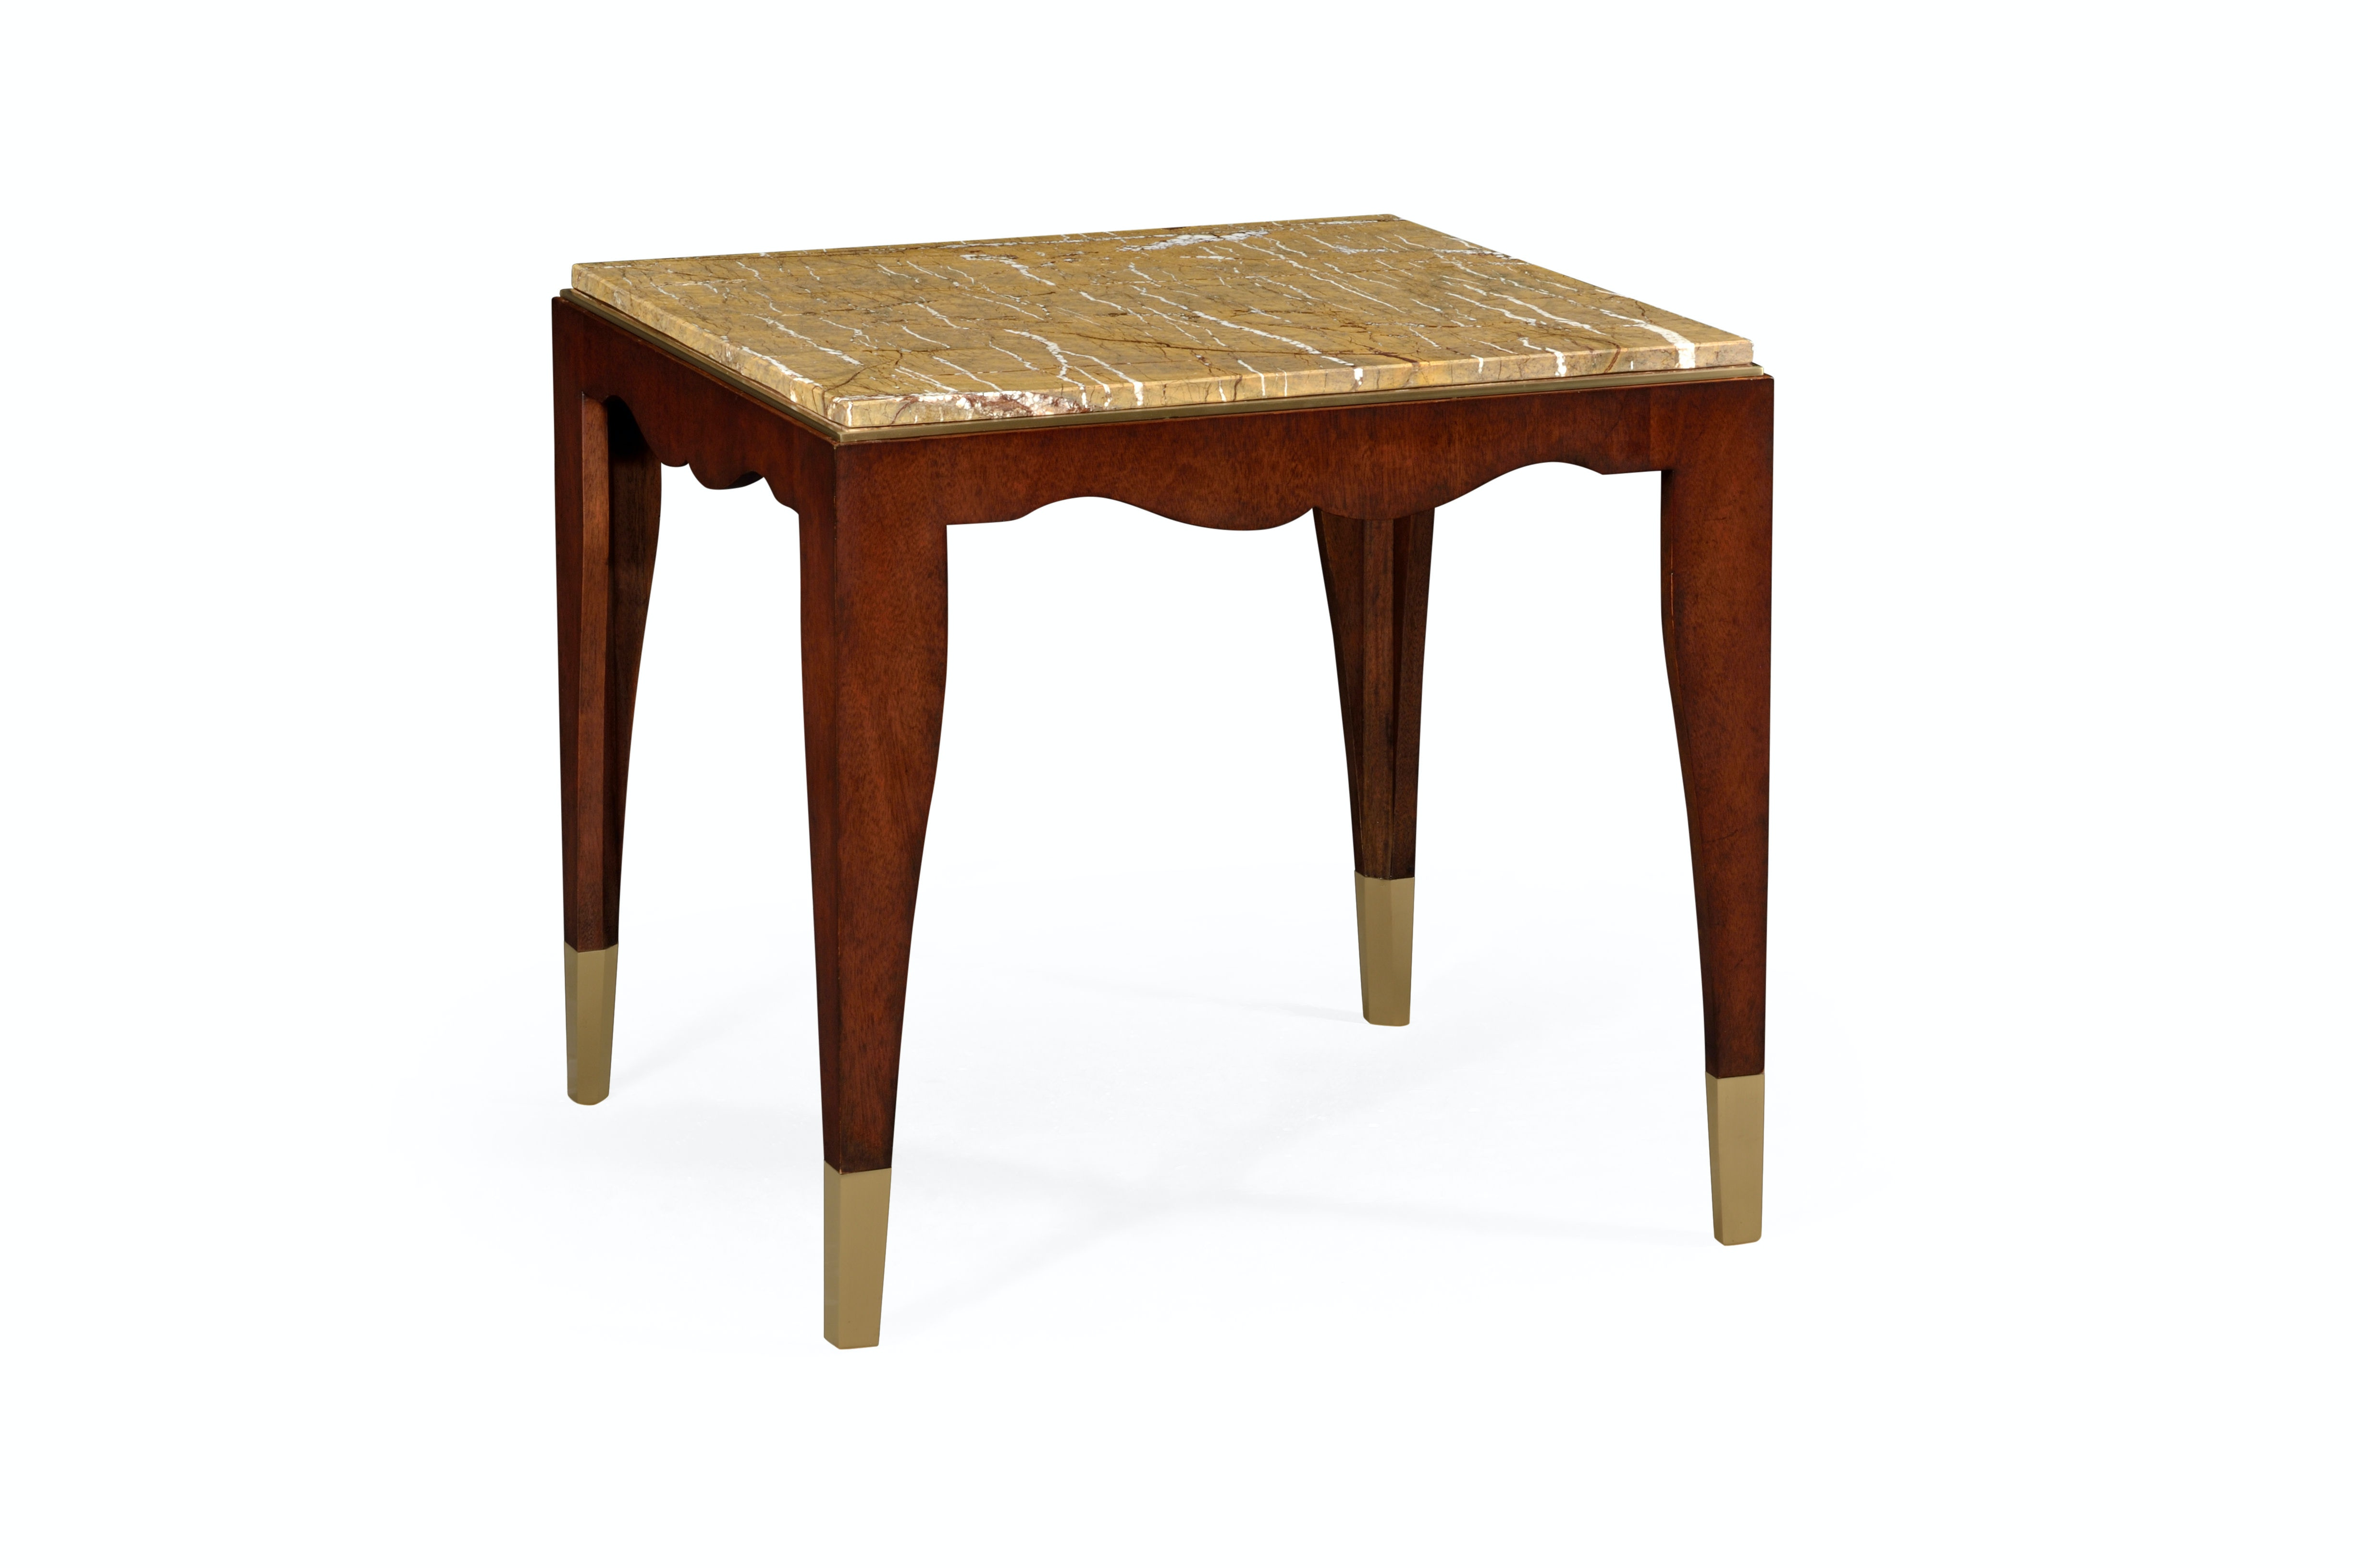 mahogany side tables living room home decor ideas jonathan charles square table with bidasar gold marble top 491159 mag at douds furniture